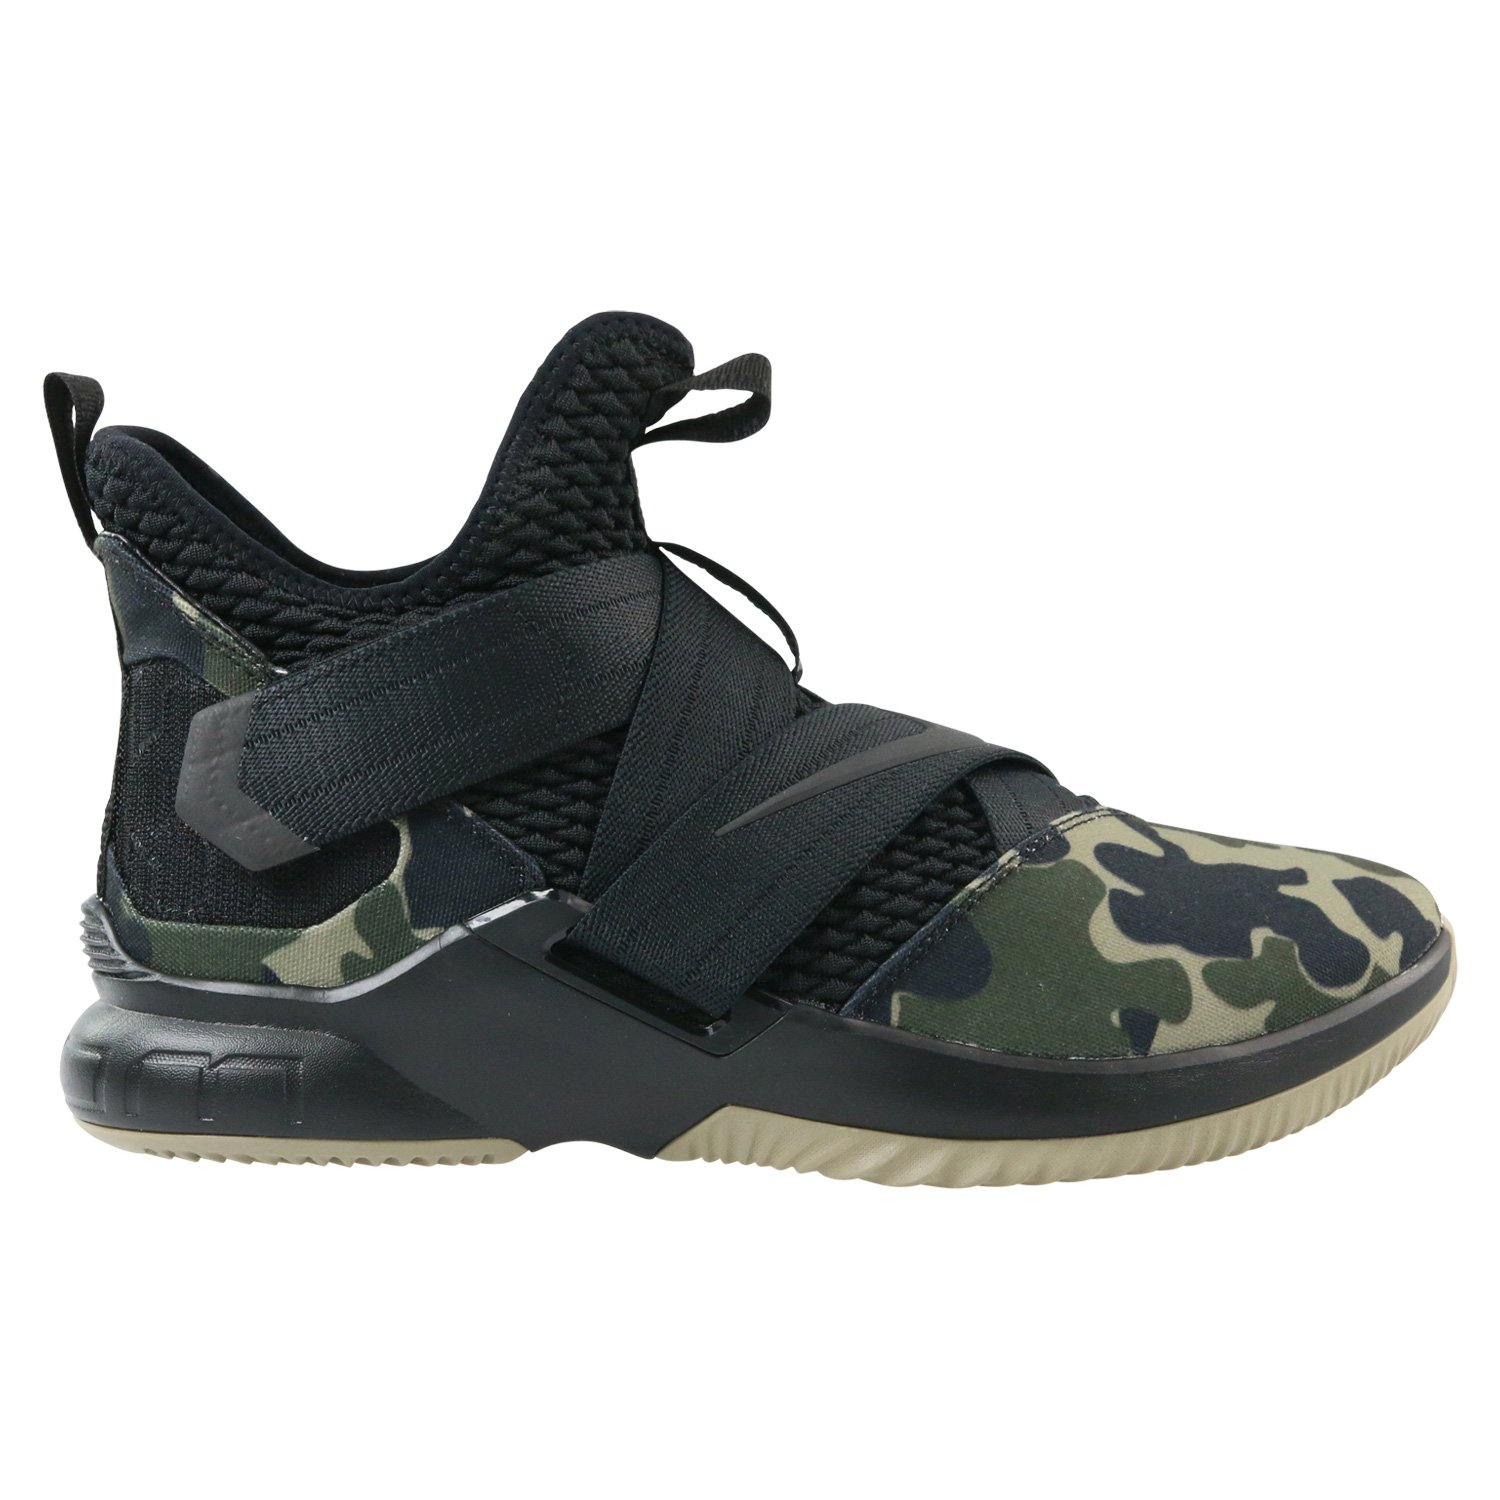 d7d954693be Galleon - Nike Lebron Soldier XII SFG Mens Basketball-Shoes AO4054-001 7.5  - Black Black-Hazel Rush